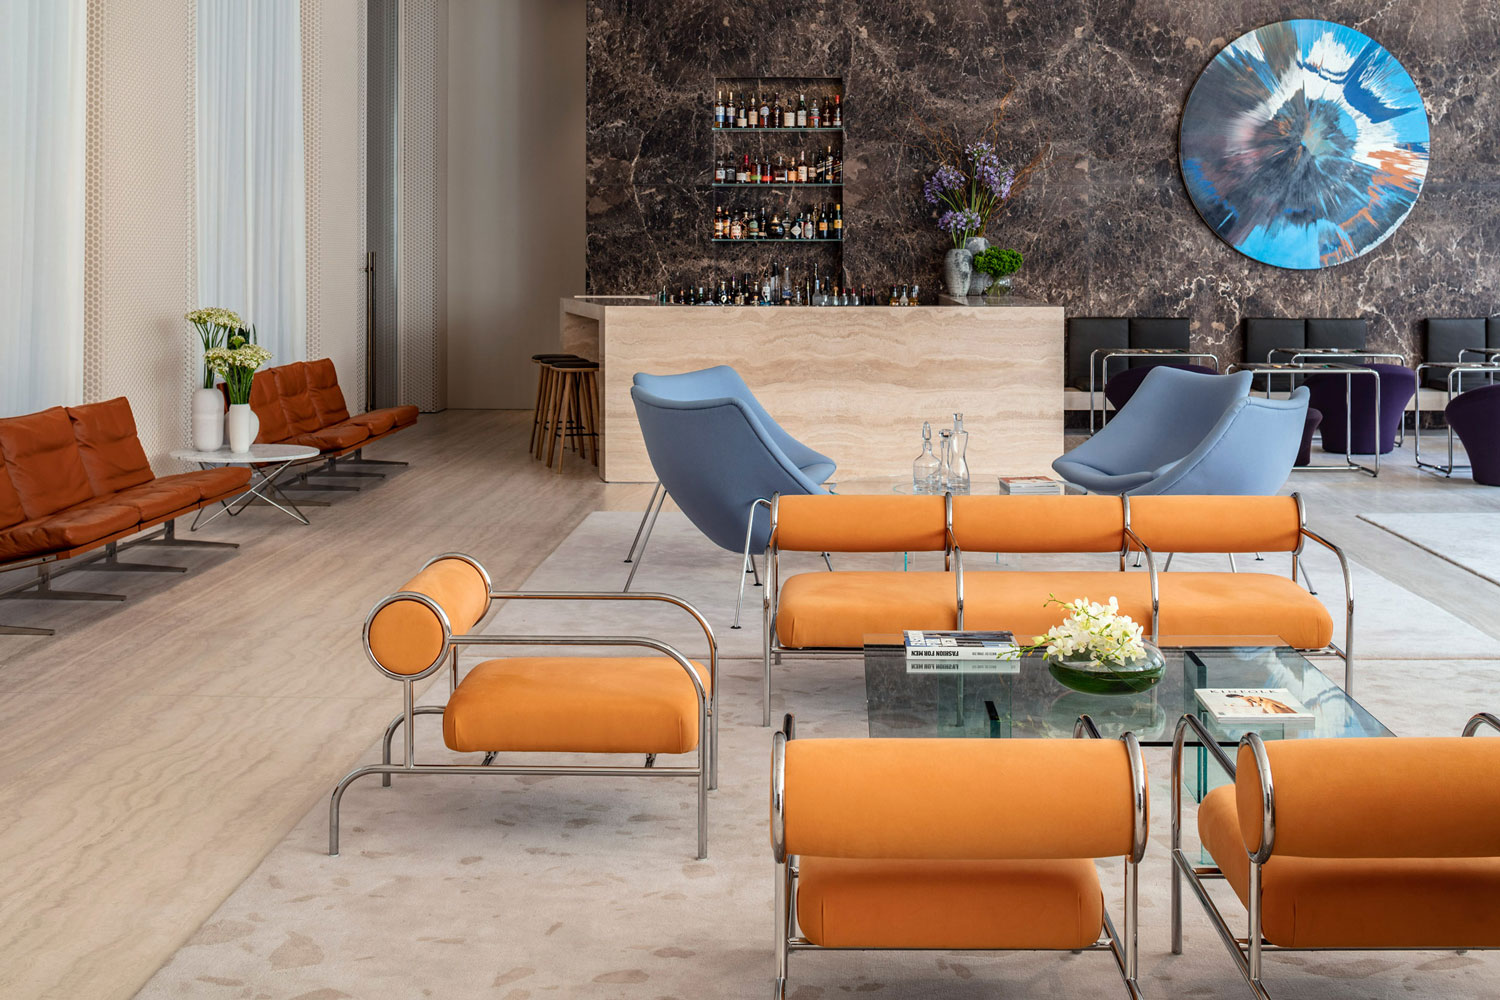 john pawson John Pawson Transforms a Former Hospital Into a Luxury Hotel John Pawson Transforms a Former Hospital Into a Luxury Hotel in Tel Aviv 12